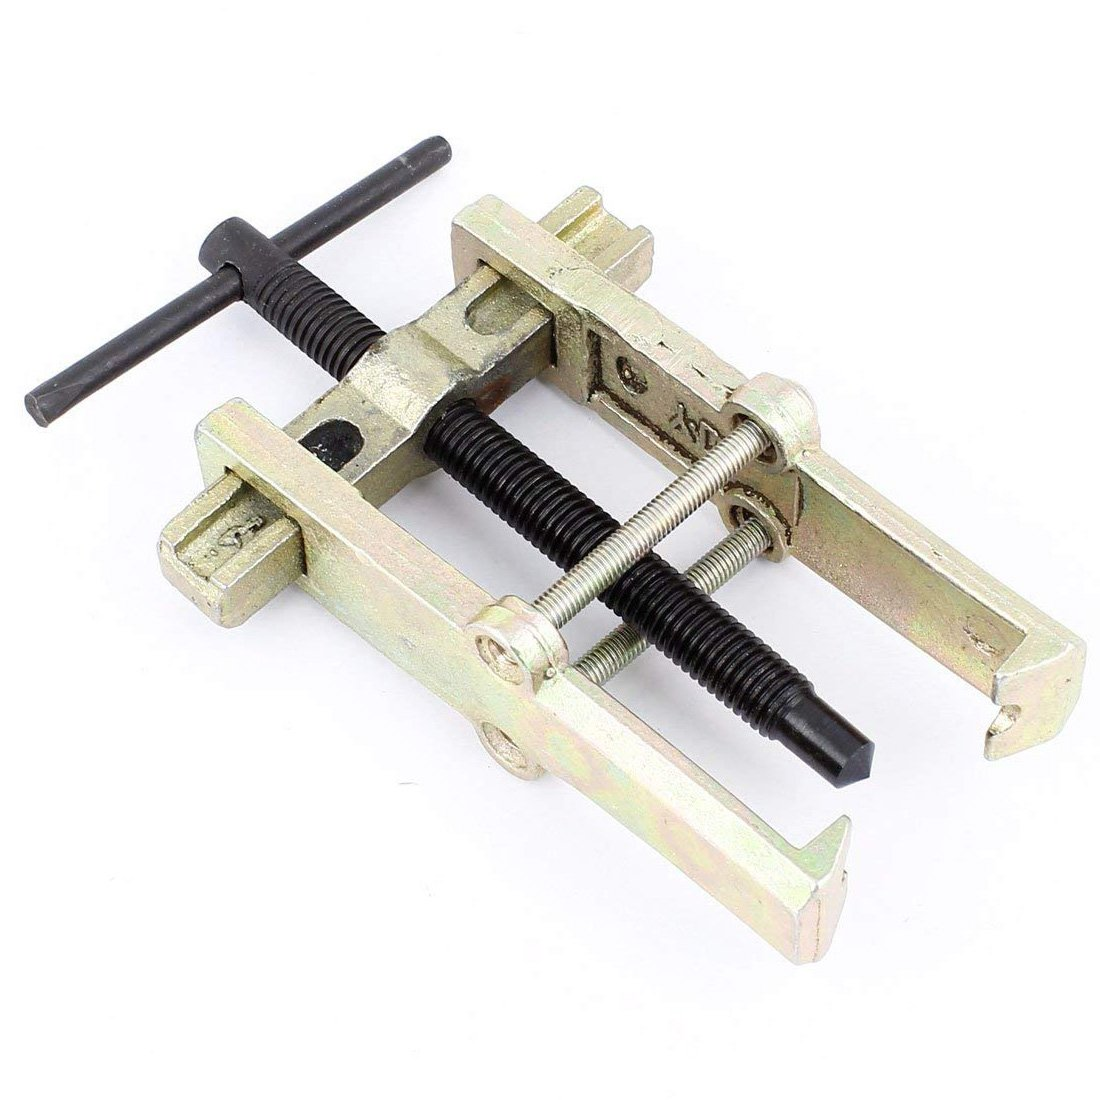 LWT XMHF Carbon Steel Two Jaw Bearing Gear Puller Tool 4.9 x 3.1 x 1.2 inches